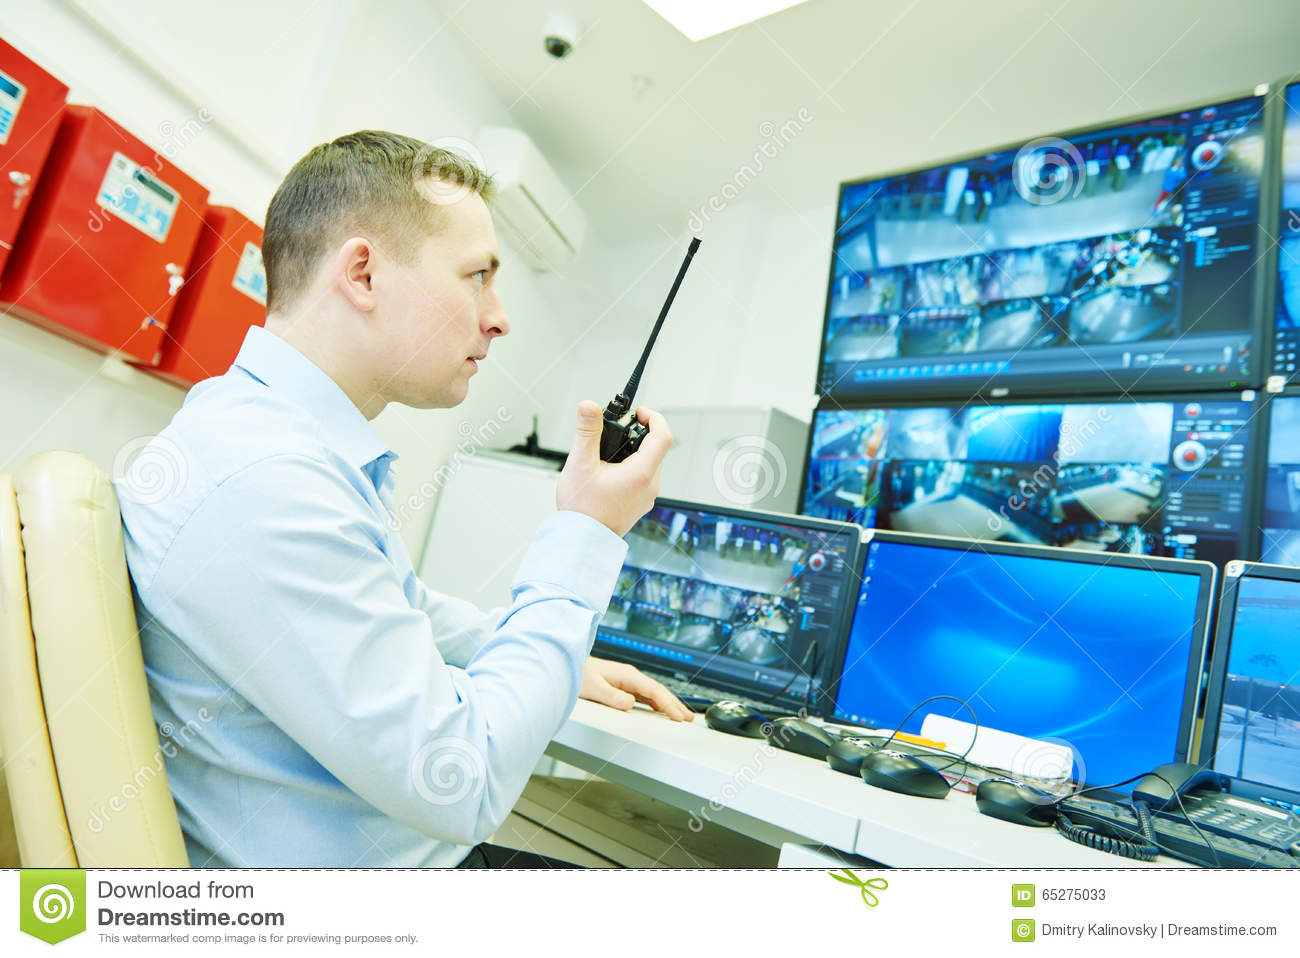 Video Monitoring Surveillance Security System Stock Image